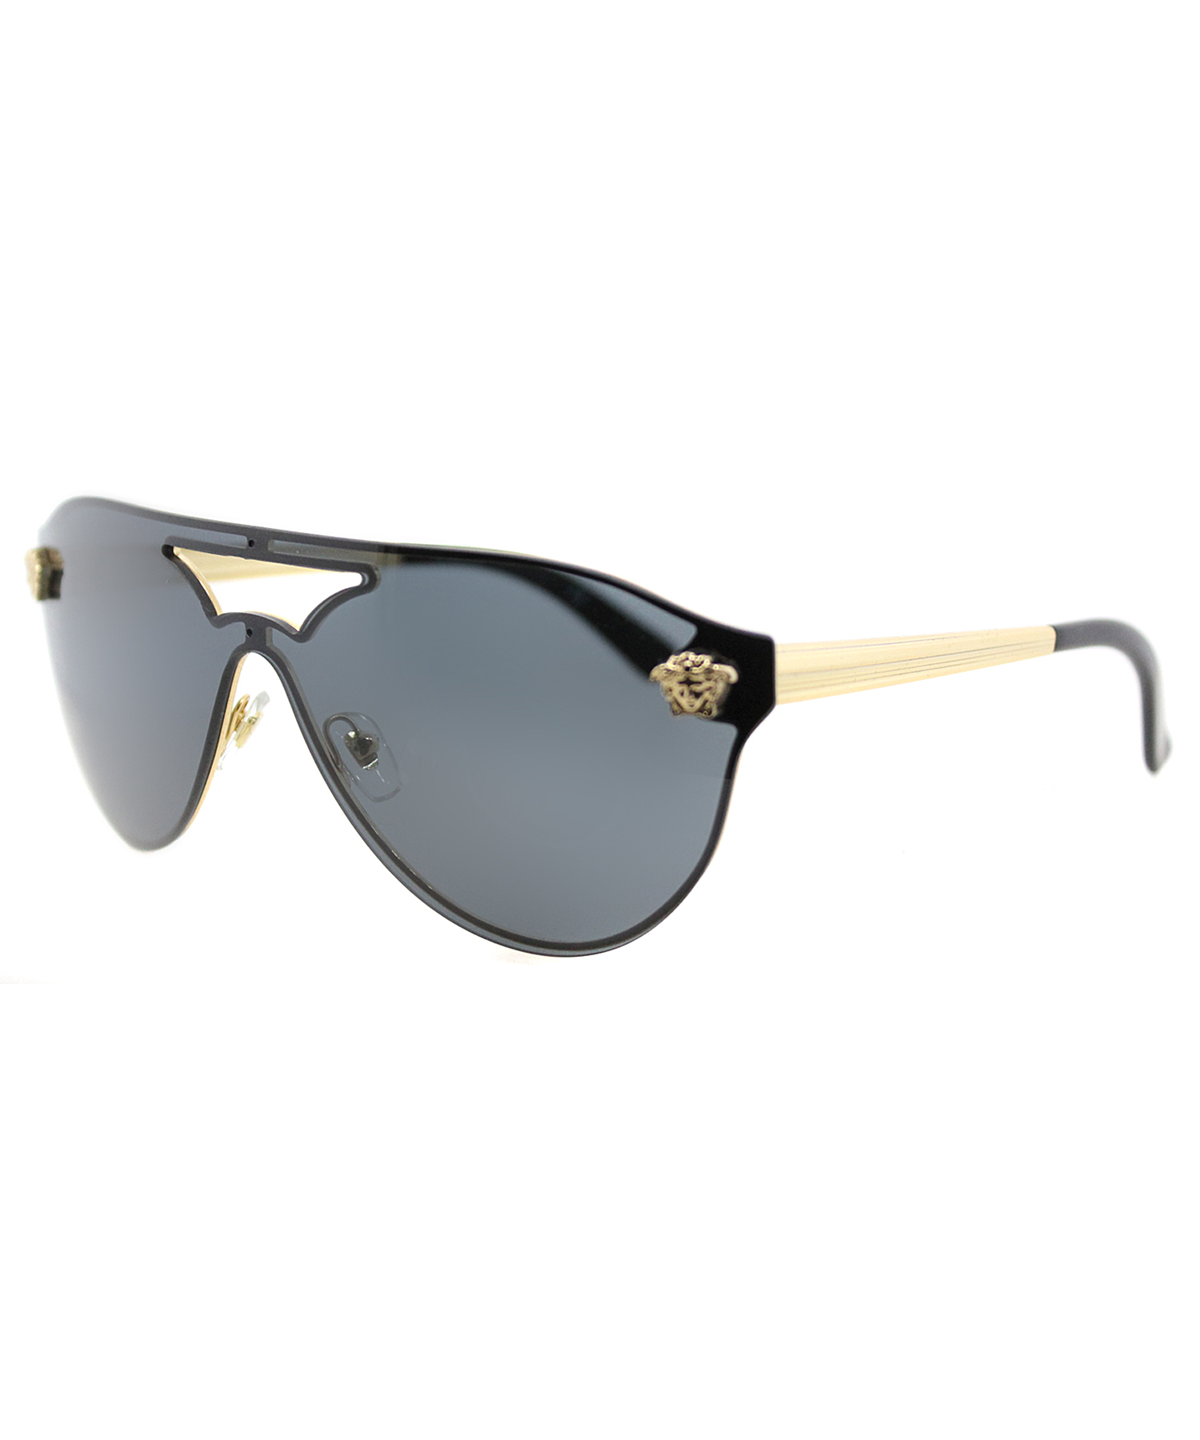 Mirrored Shield Brow-Bar Sunglasses, Gold/Light Gray, Gold/Lt Gray in Gold/Brown Mirror